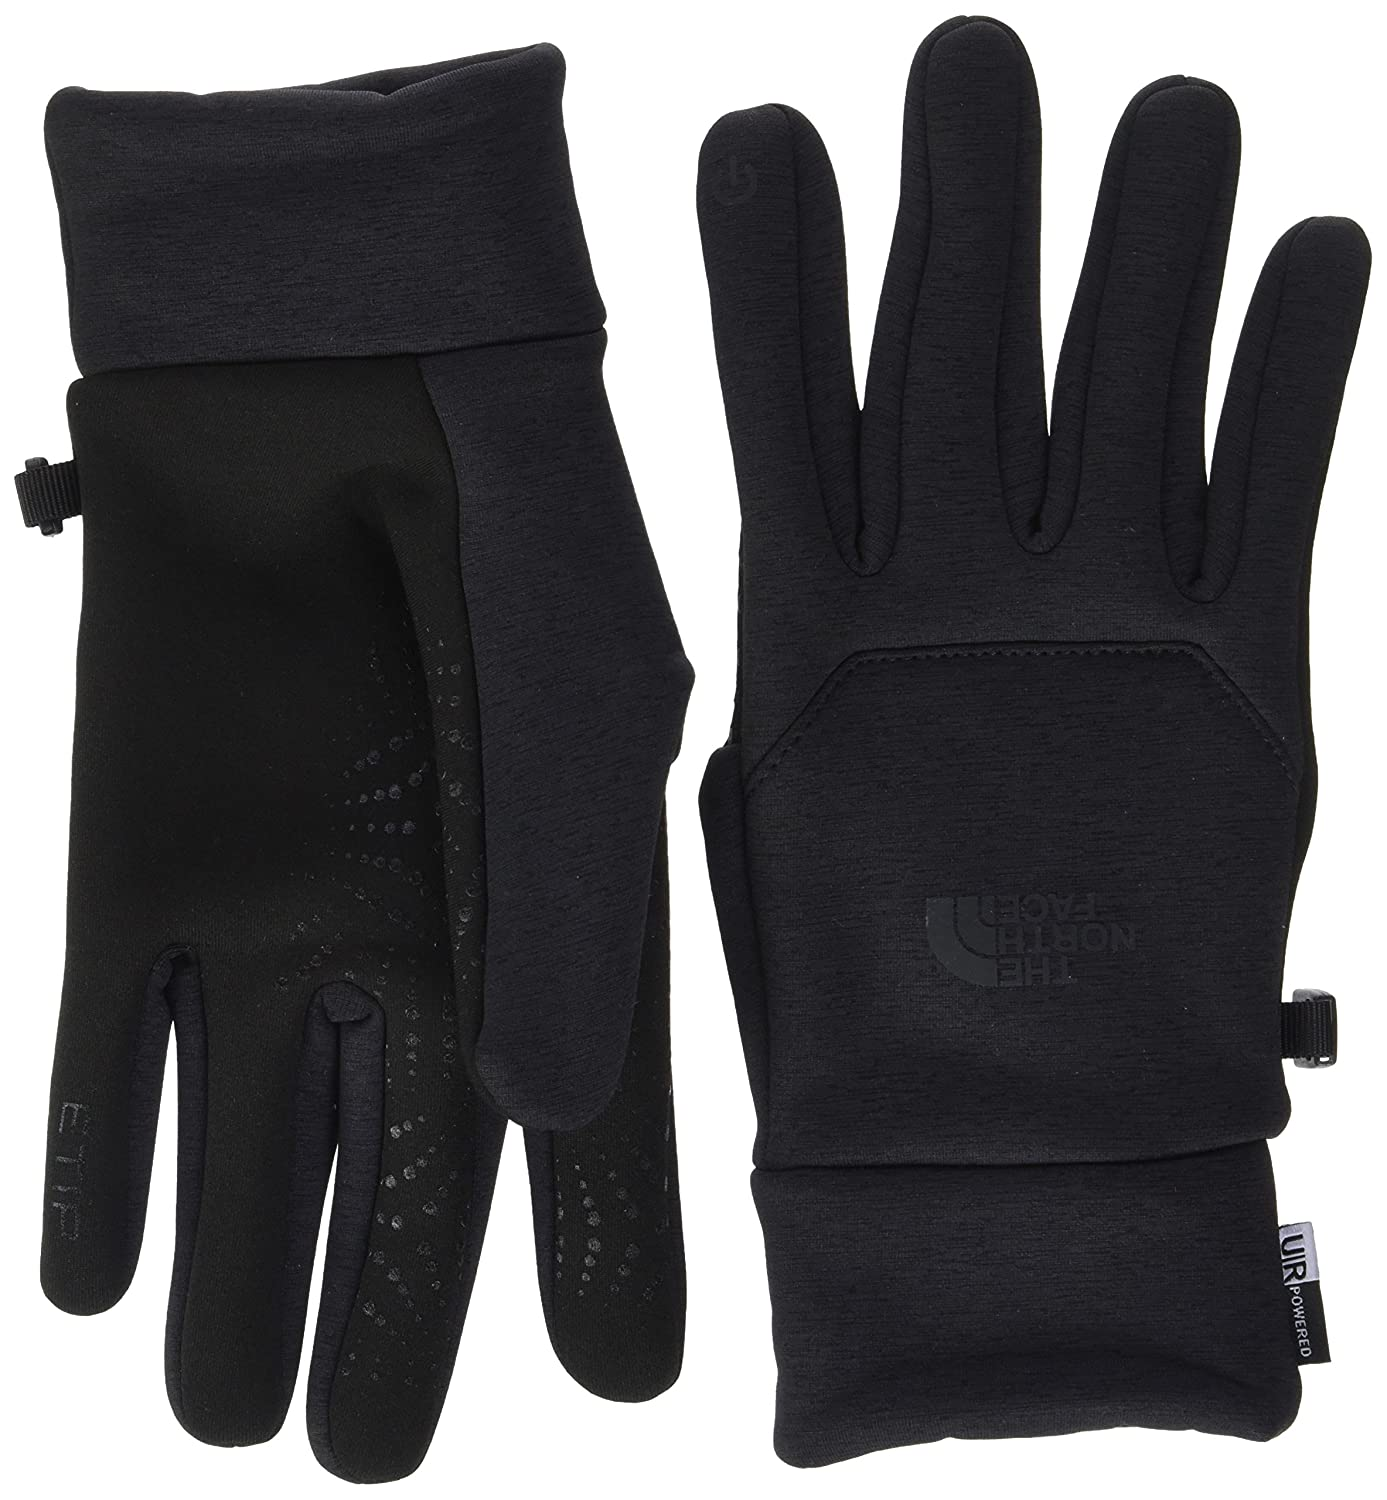 THE NORTH FACE Etip Herren-Handschuhe